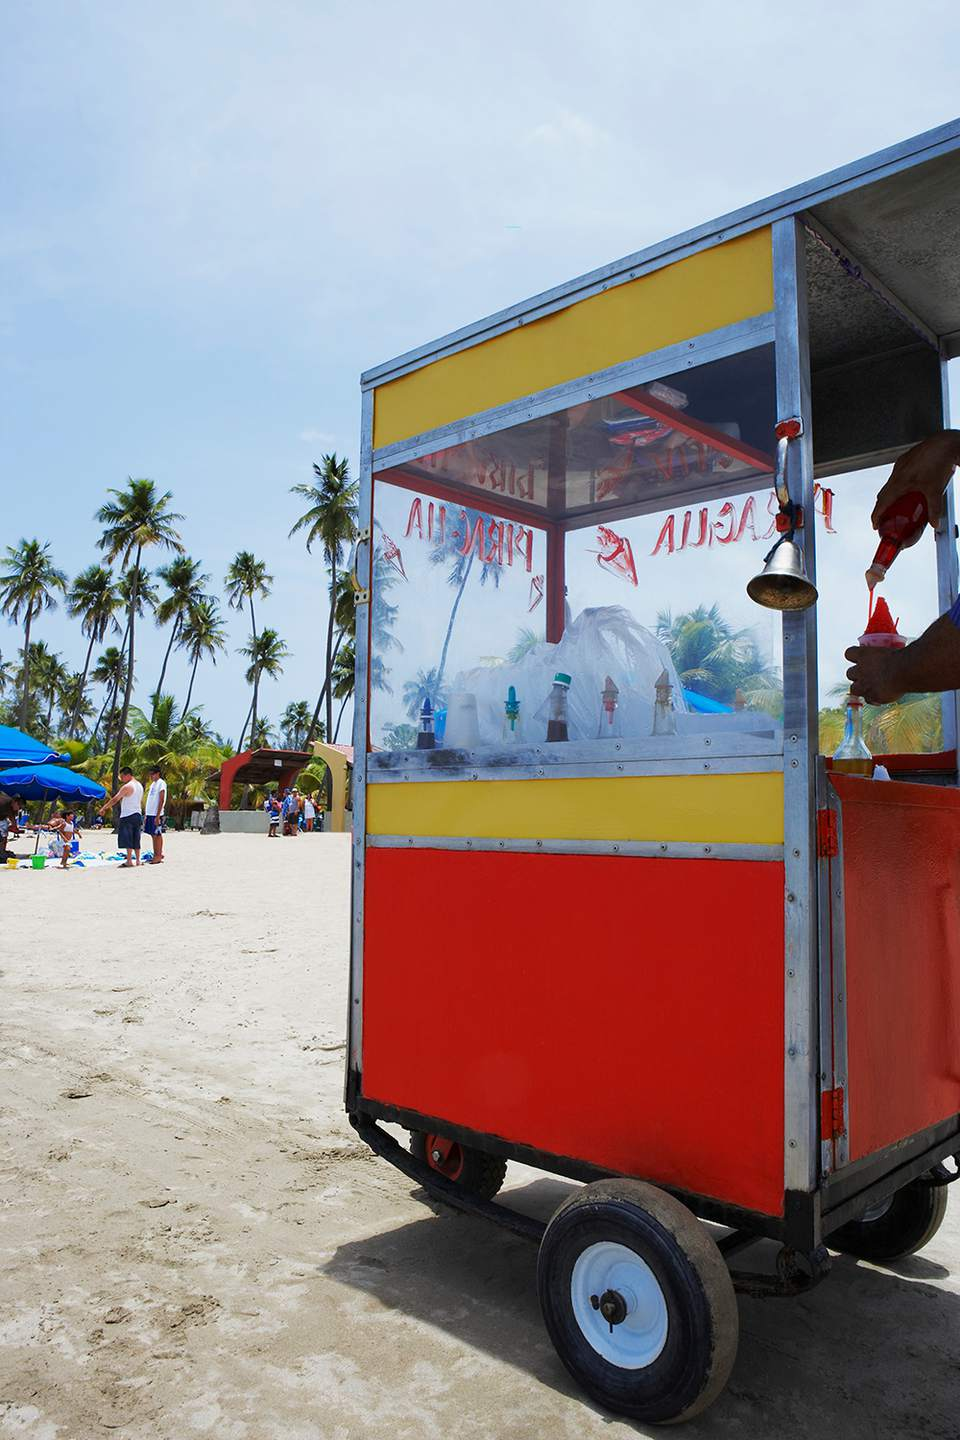 Ice cream stand on the beach, Luquillo Beach, Puerto Rico.